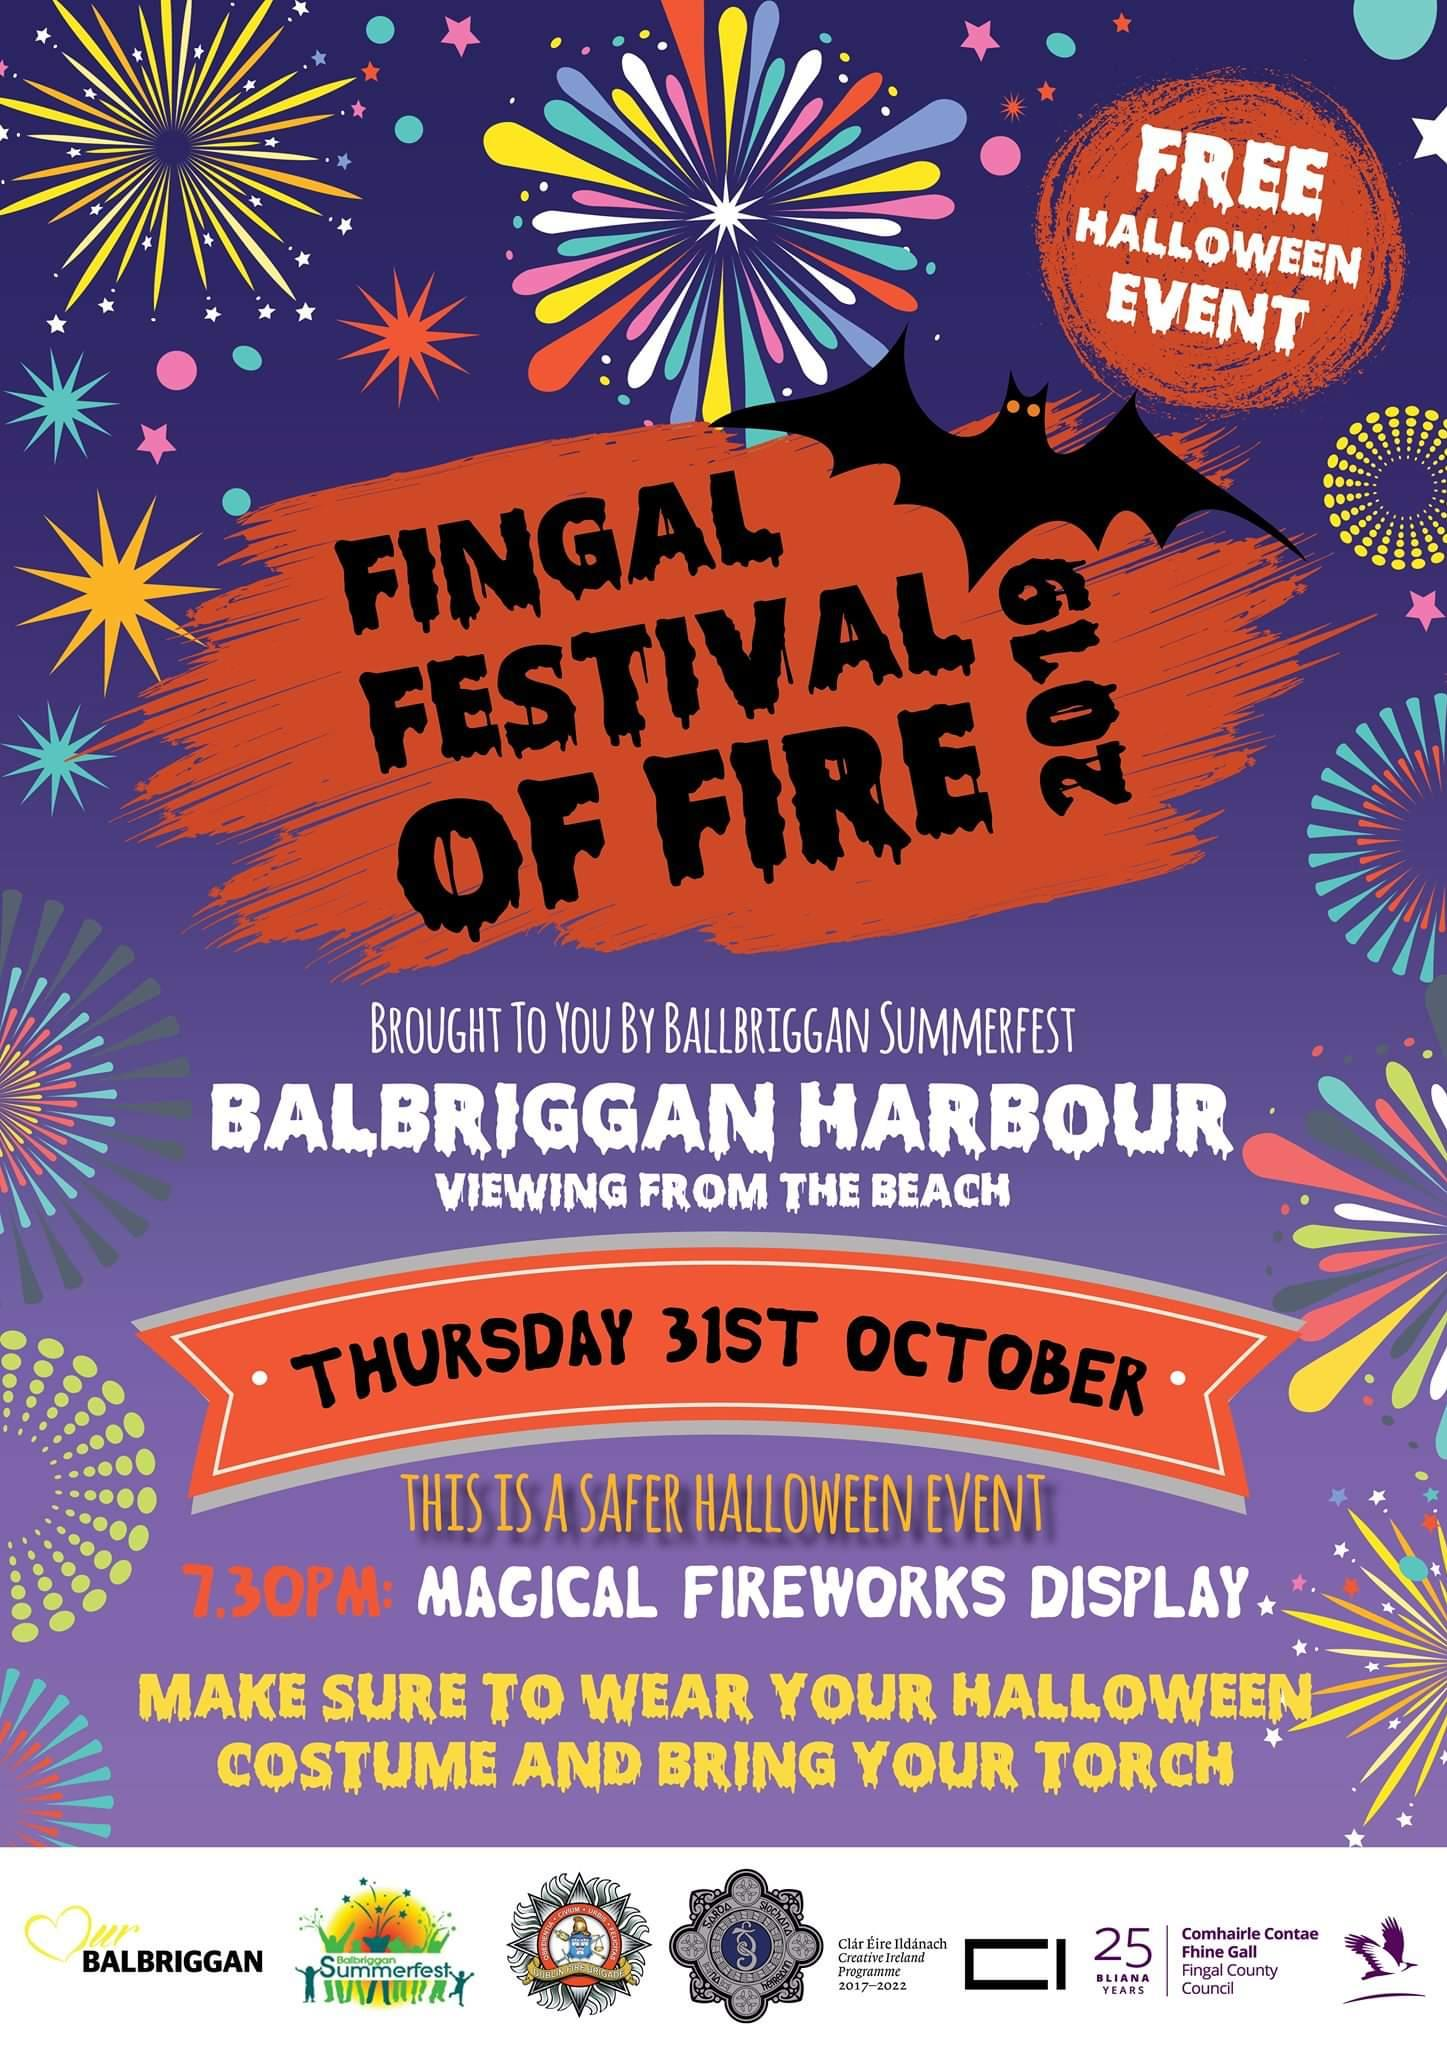 Balbriggan Festival of Fire